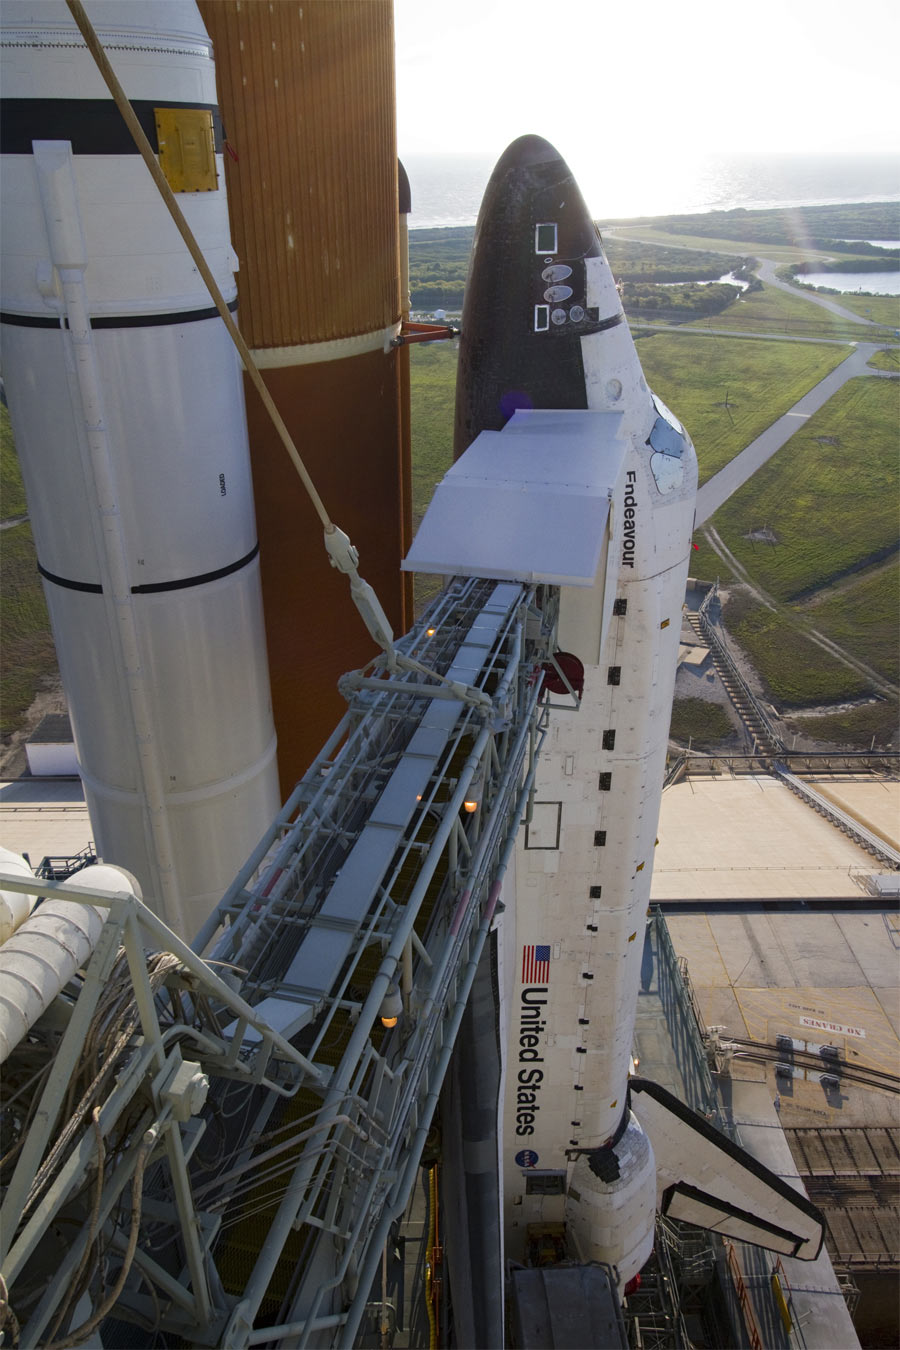 NASA Delays Final Launch of Shuttle Endeavour to Avoid Space Traffic Jam